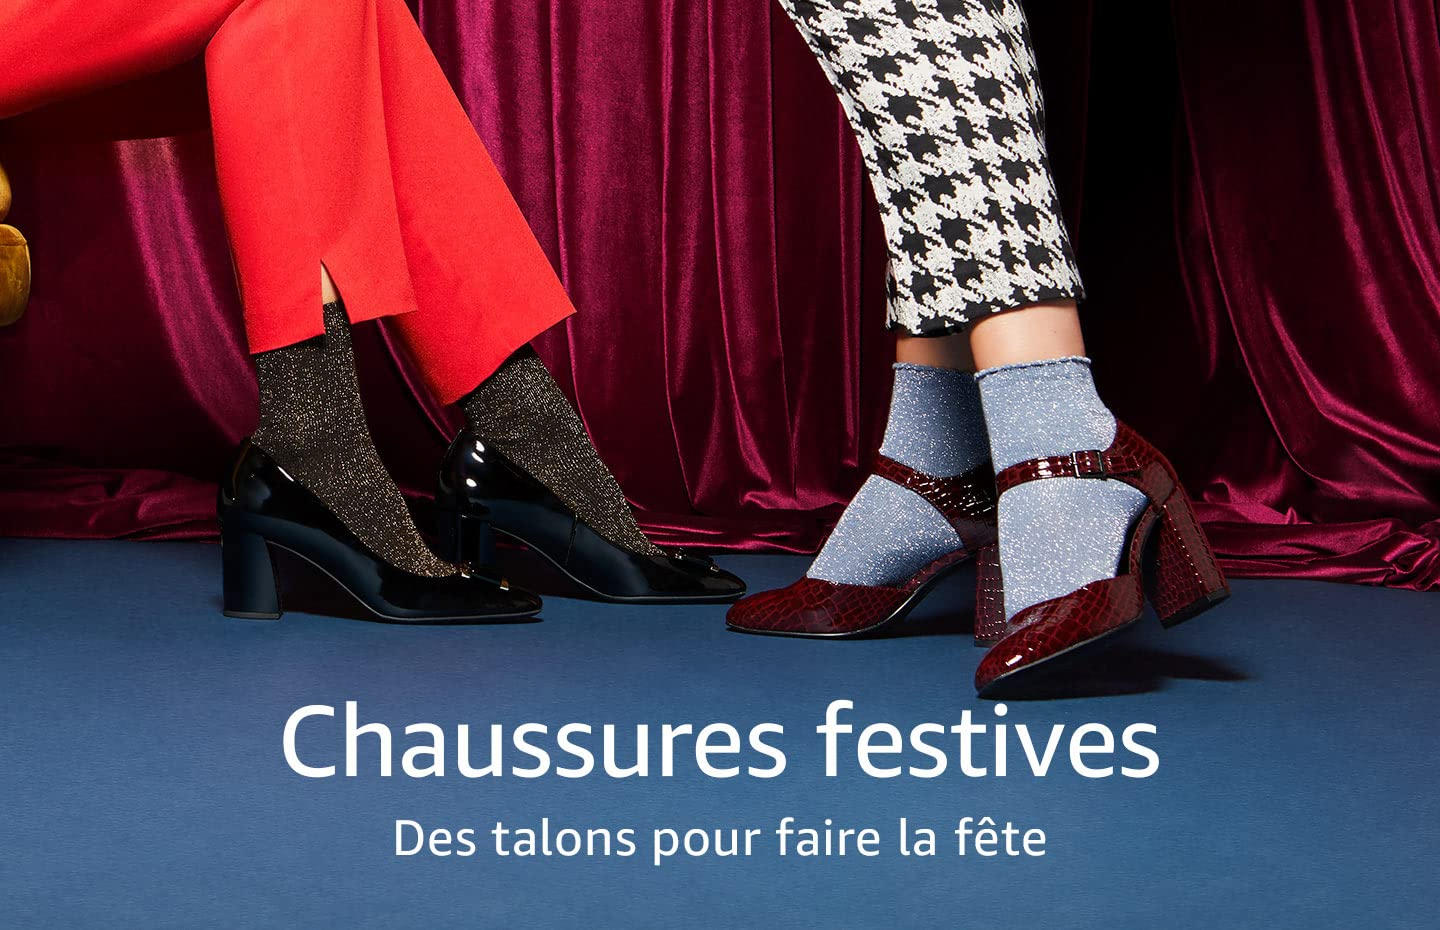 Chaussures festives